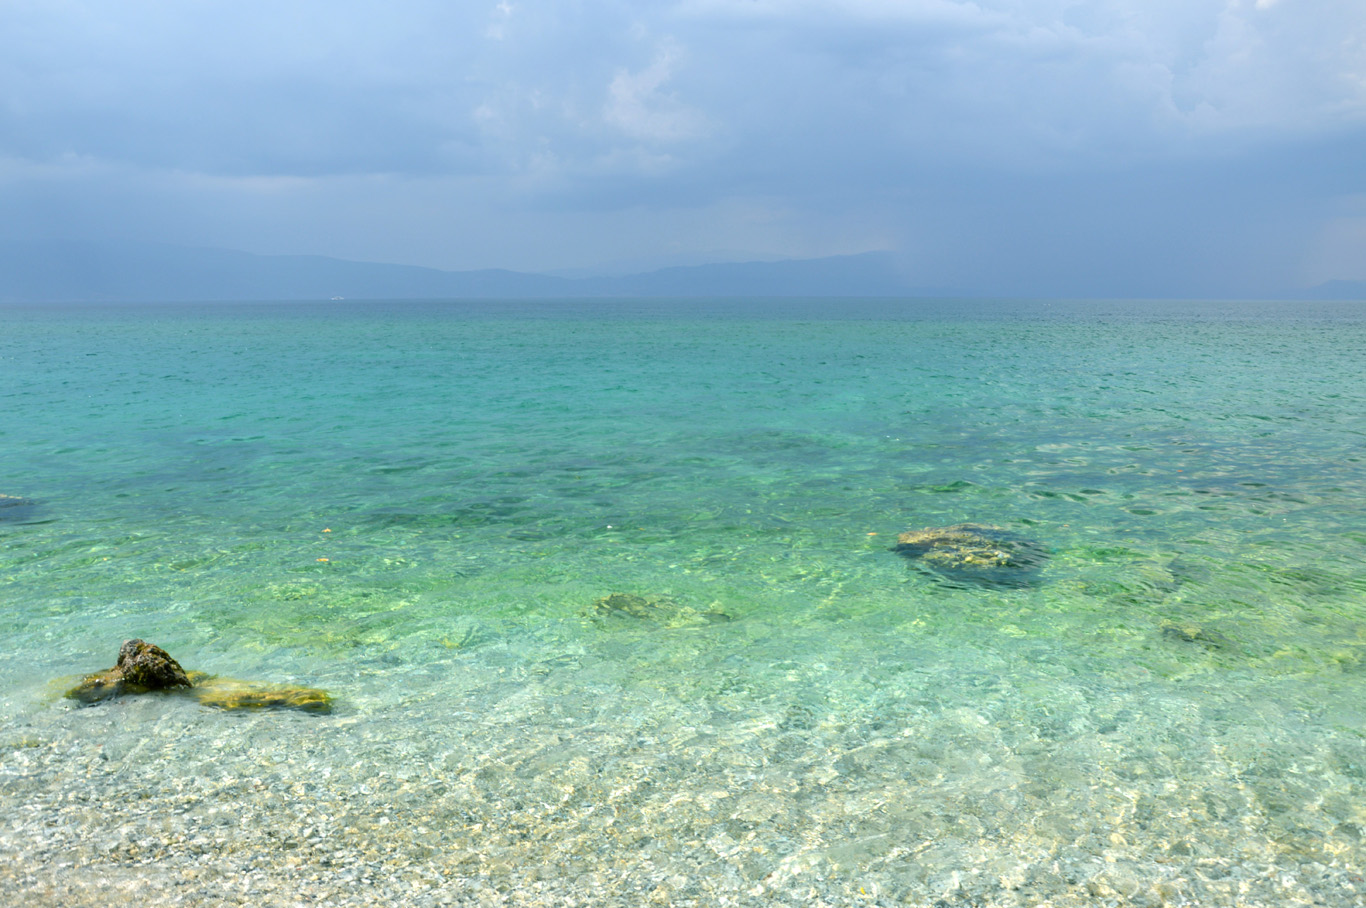 Trpjeca - clear water and Albanian shore in the distance